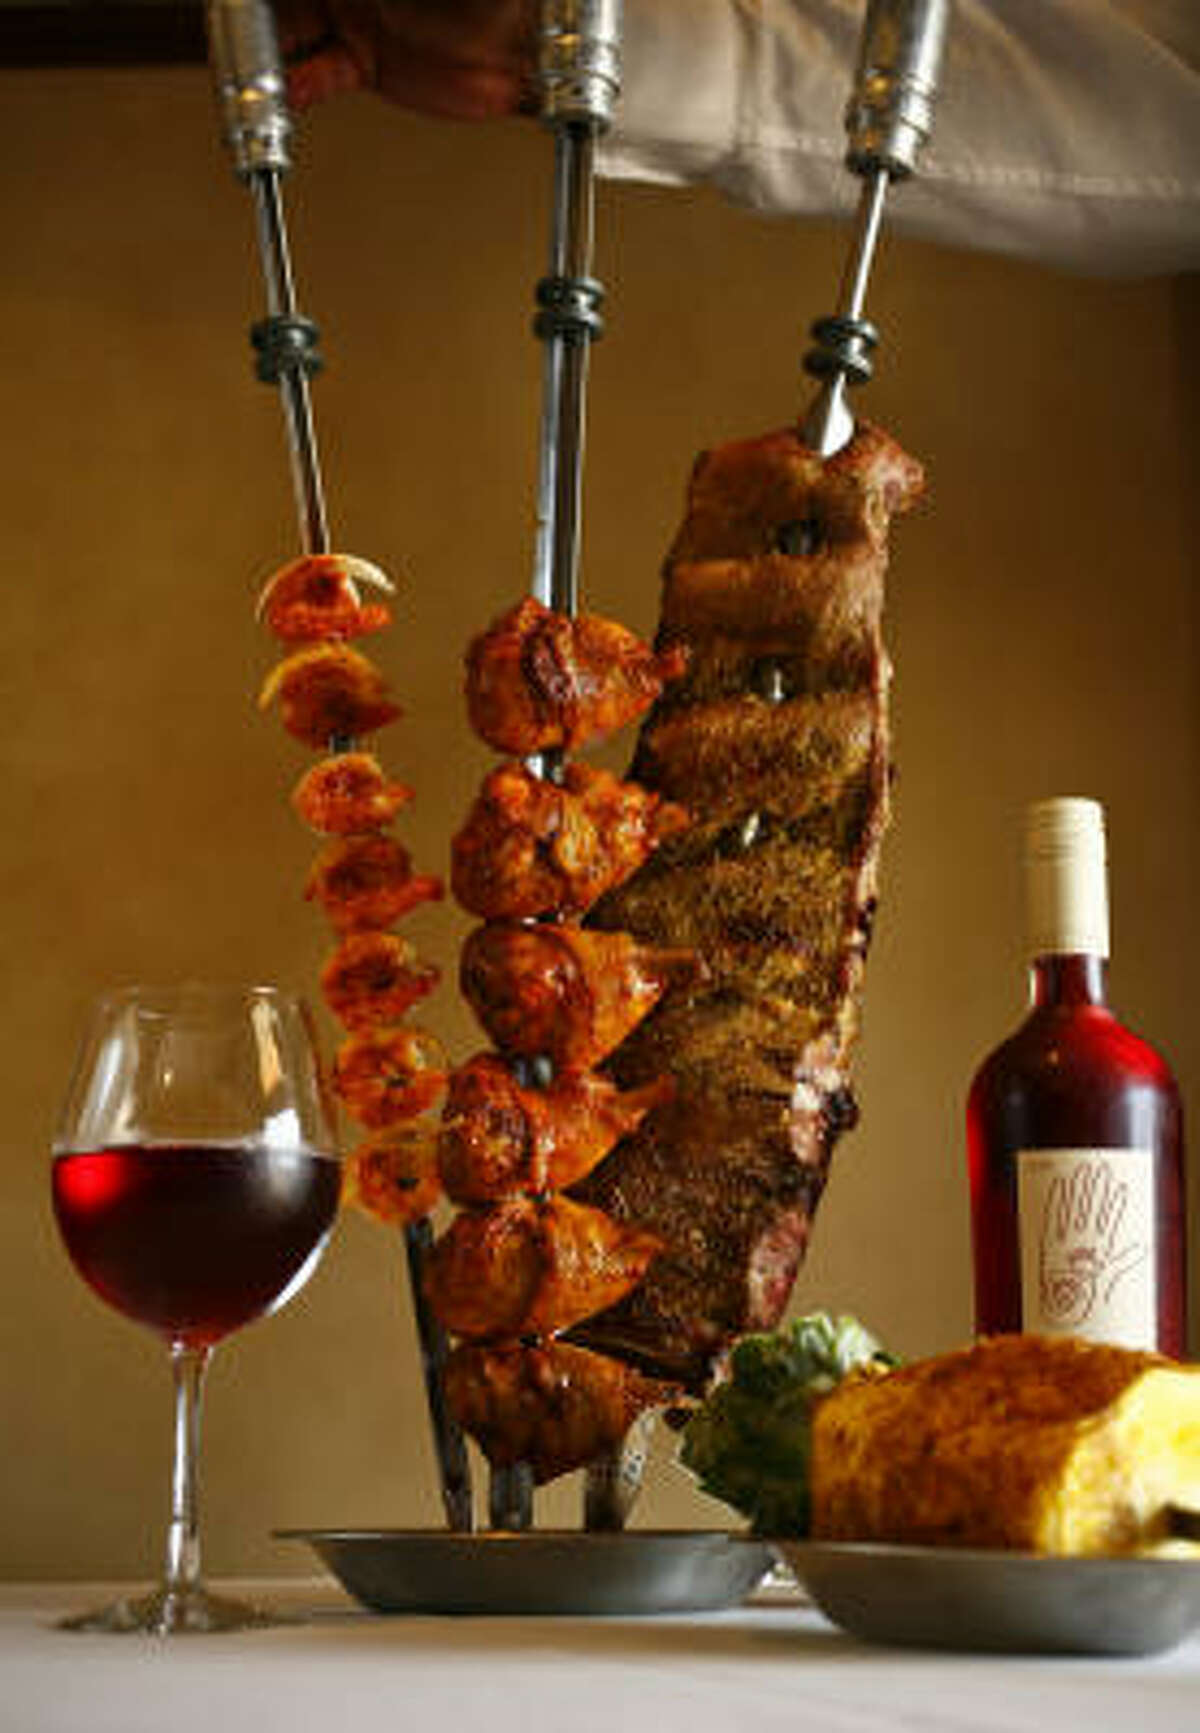 Angus Grill Brazilian Steakhouse Shrimp, Chicken Legs and Pork Ribs on their skewers with Fried Pineapple, and Crios Malbec Rose at 6106 Westheimer. Read more about III Forks.